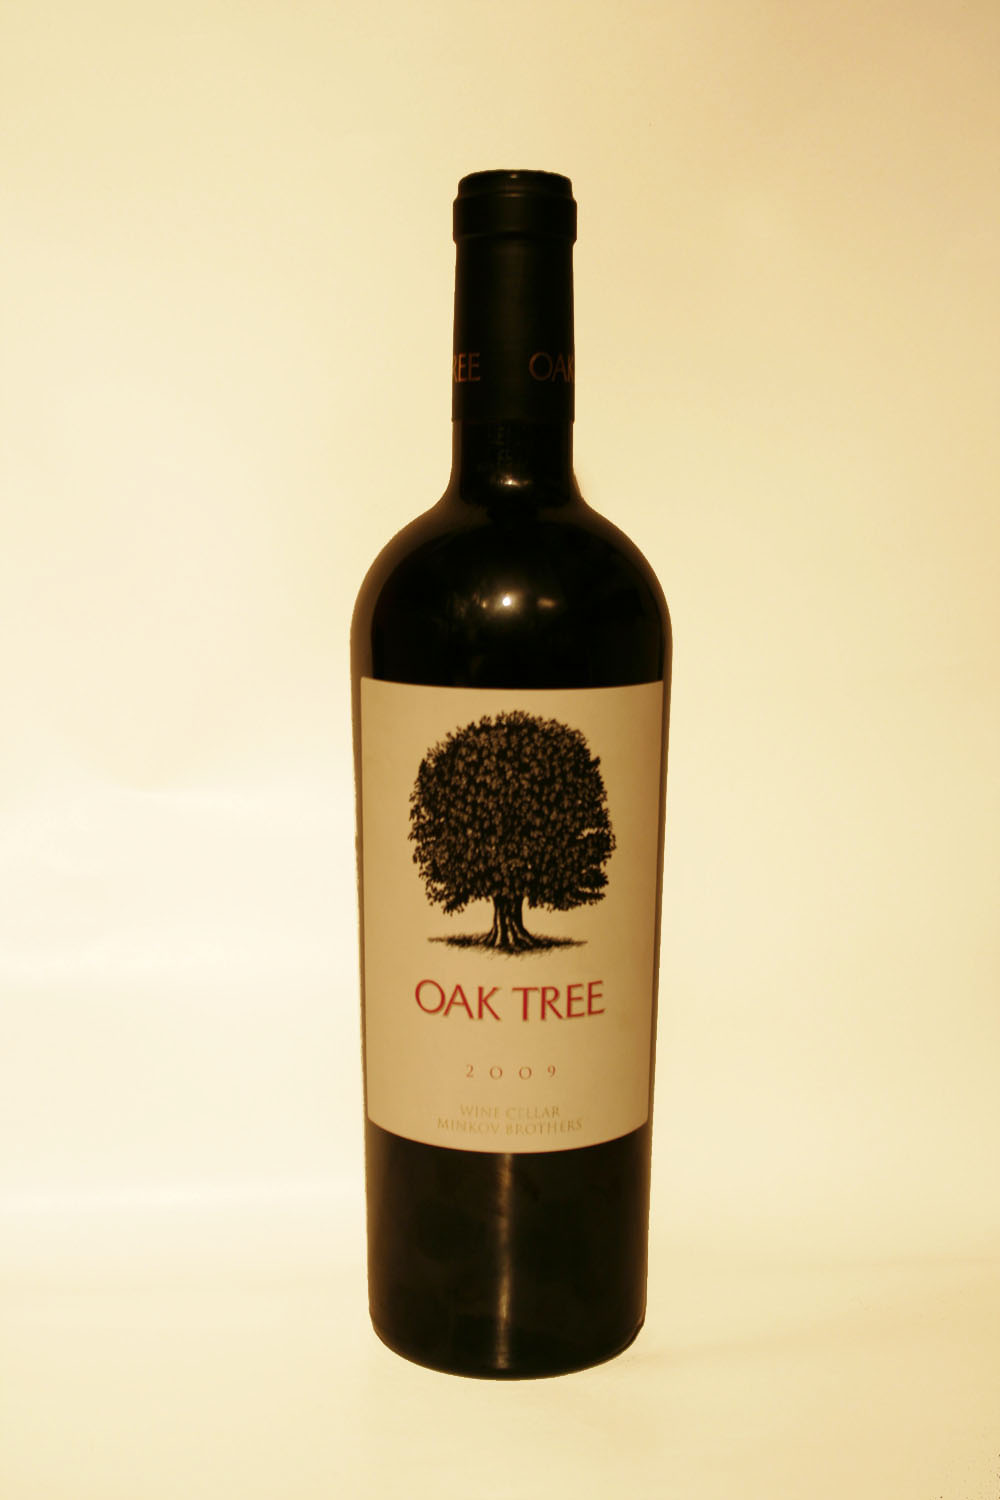 Minkov Brothers Oak Tree 2009